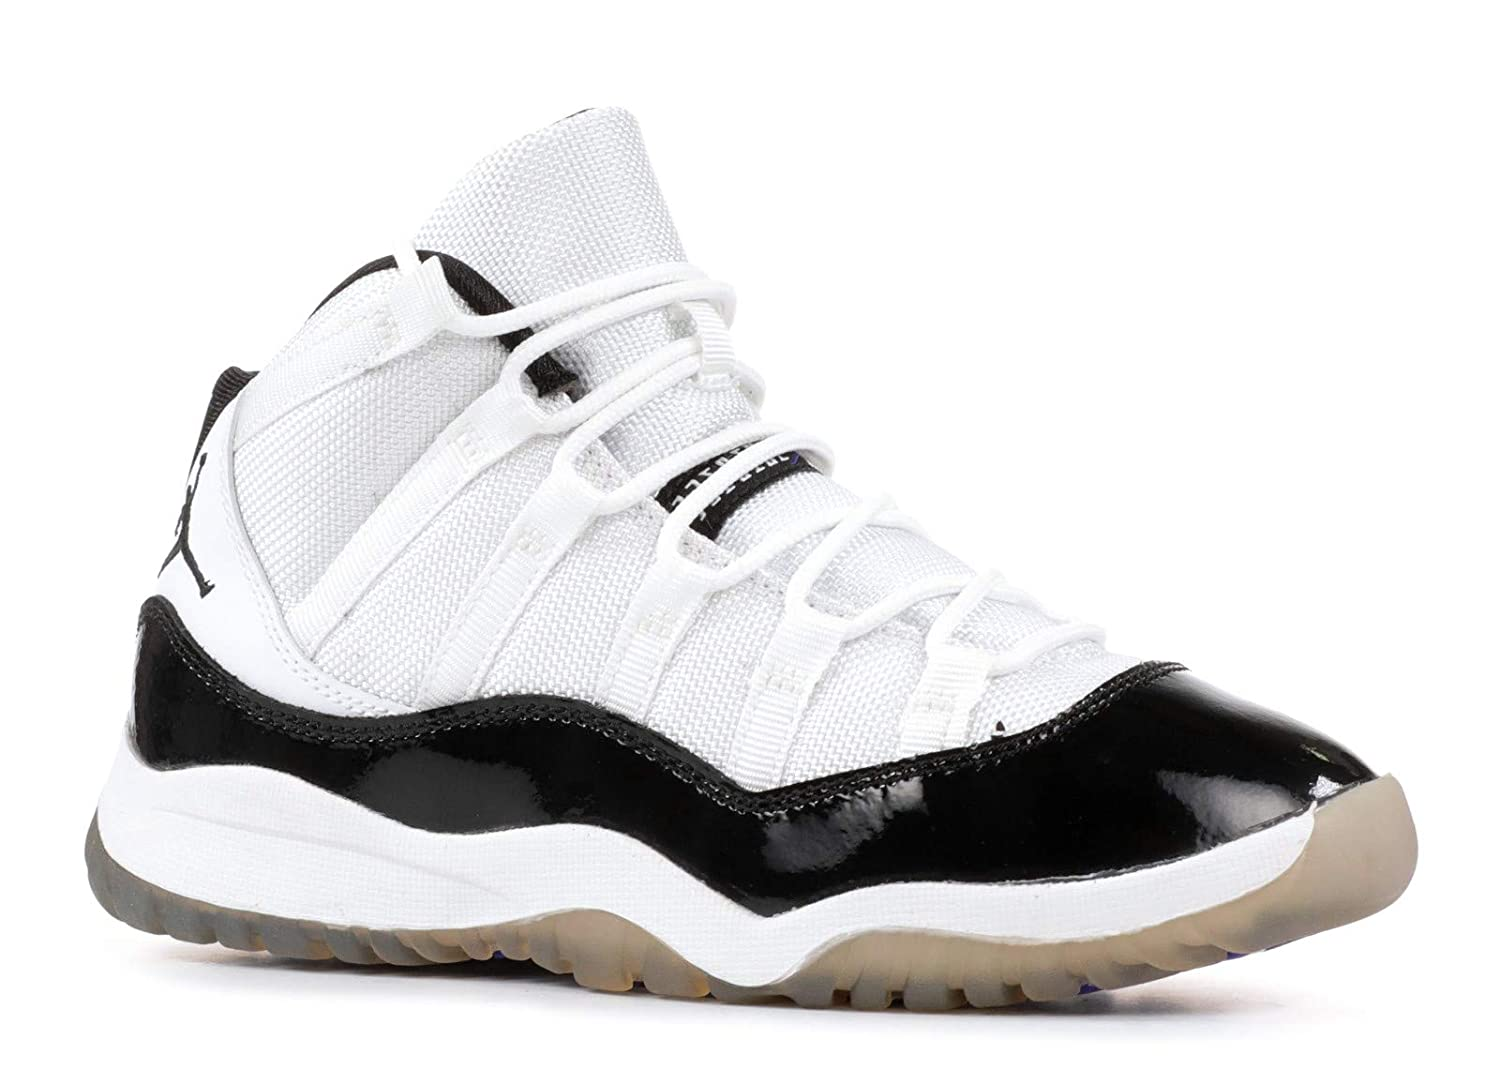 online store 82996 13a5a Amazon.com  Nike Air Jordan 11 Retro (PS) Concord Little Kids Basketball  Shoes  378039-107  White Black-Dark Concord Boys Shoes 378039-107  Shoes